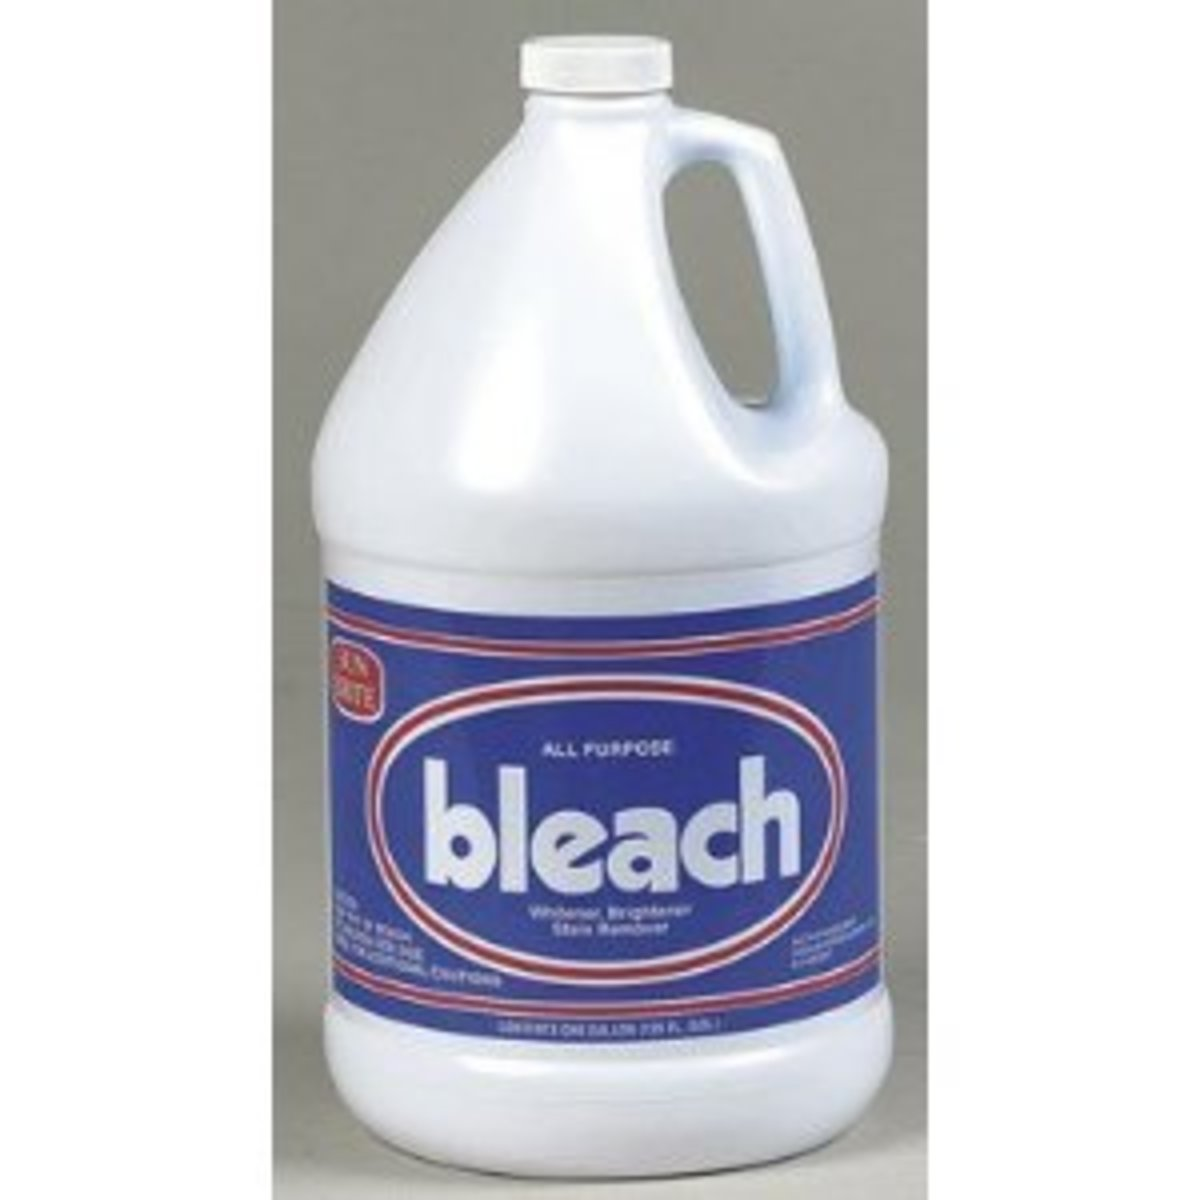 22 Great Uses for Household Bleach